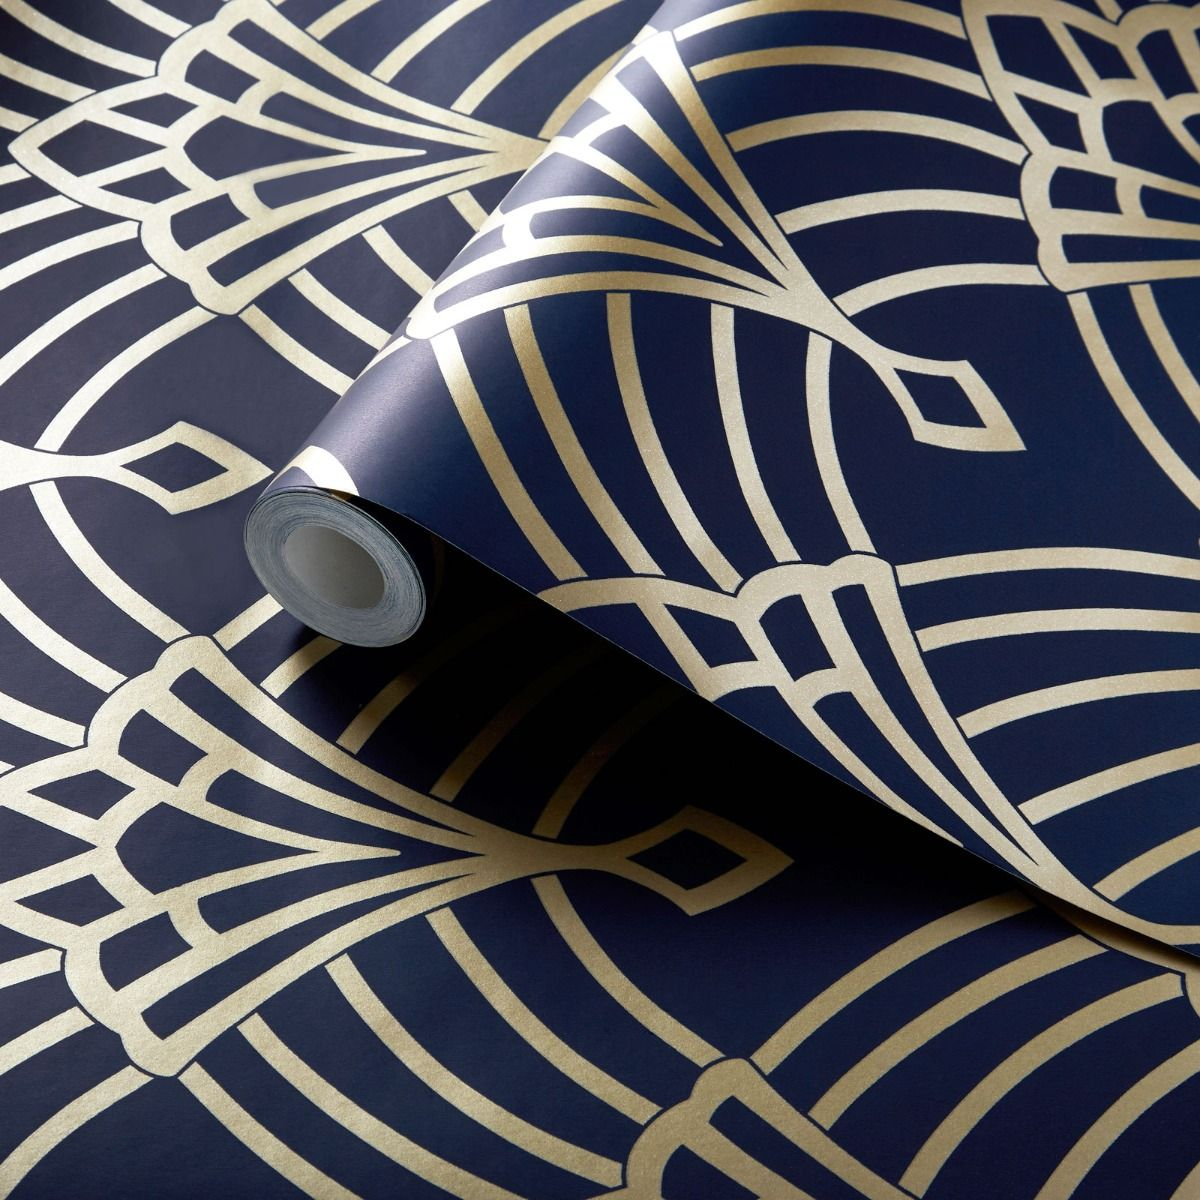 art deco 1920s colour of the year navy blue